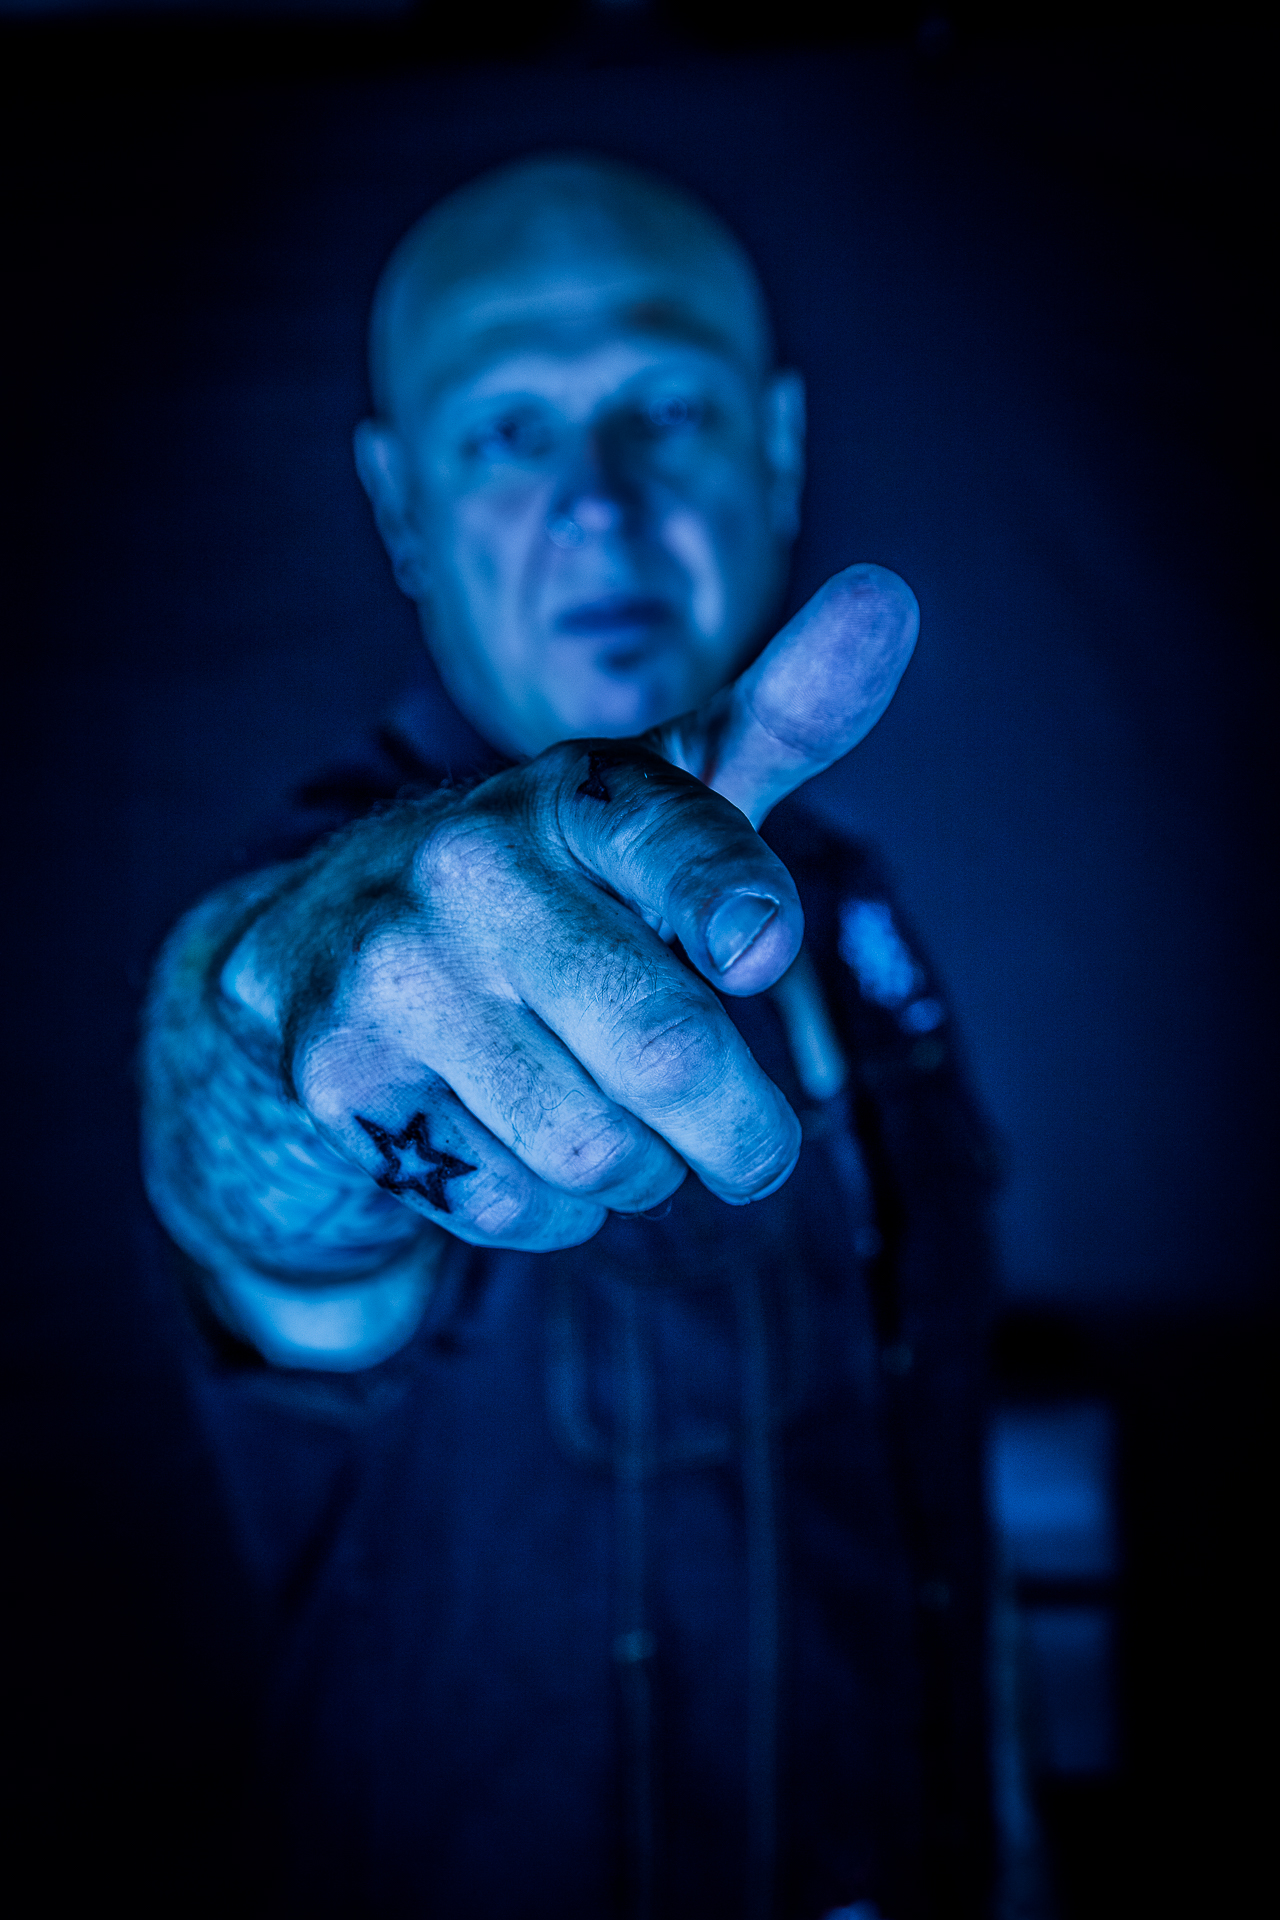 A blue tinted shot of drummer & producer Pete Newdeck, pointing at the camera, only his outstretched fingers are in focus.